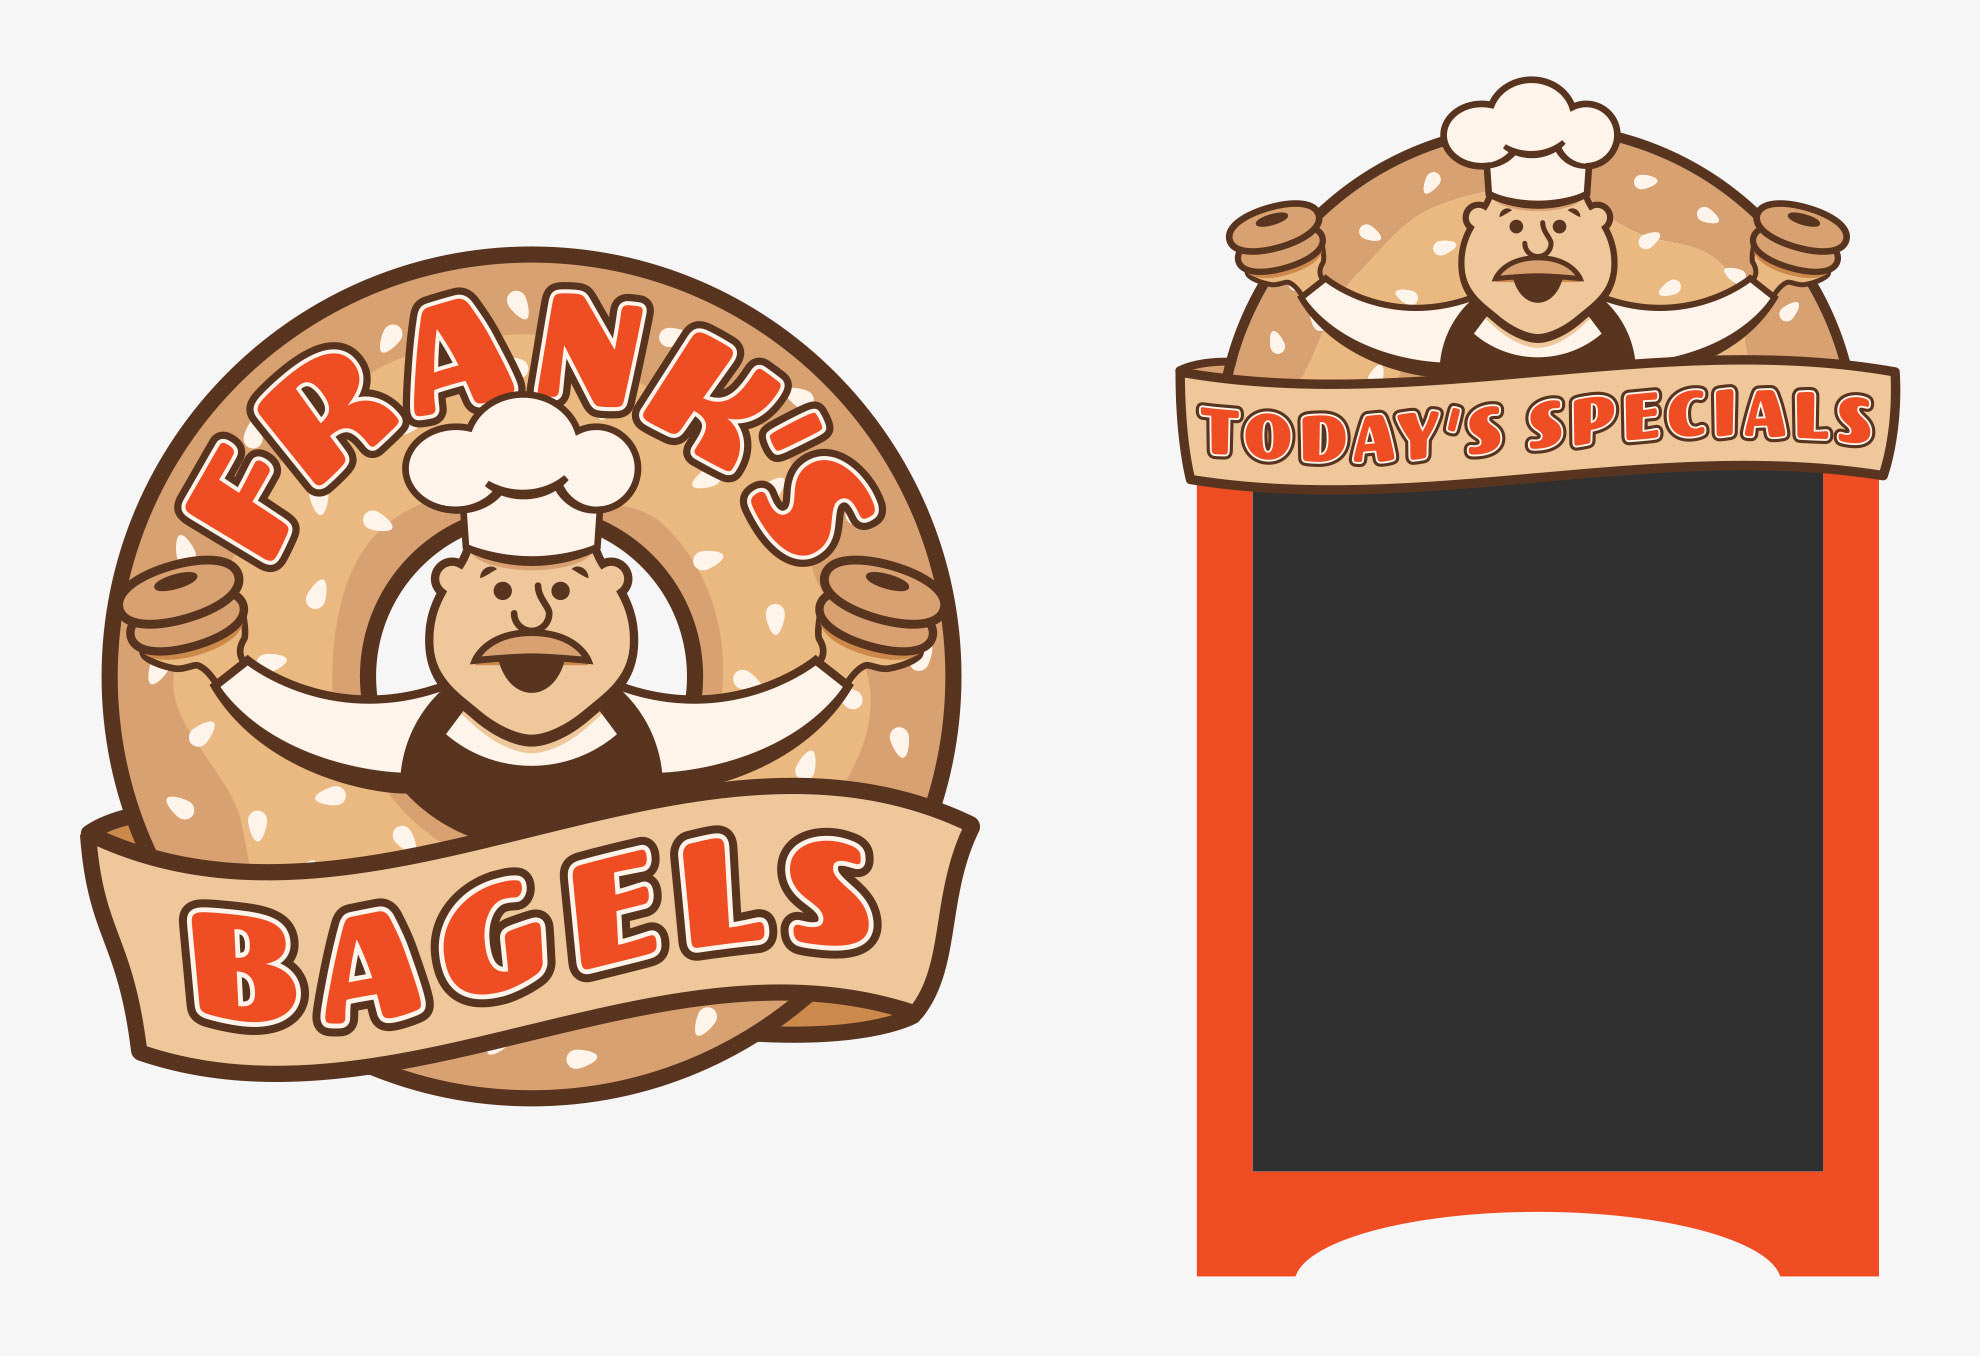 Grace and Frankie Season 3 Bagel Shop Signage